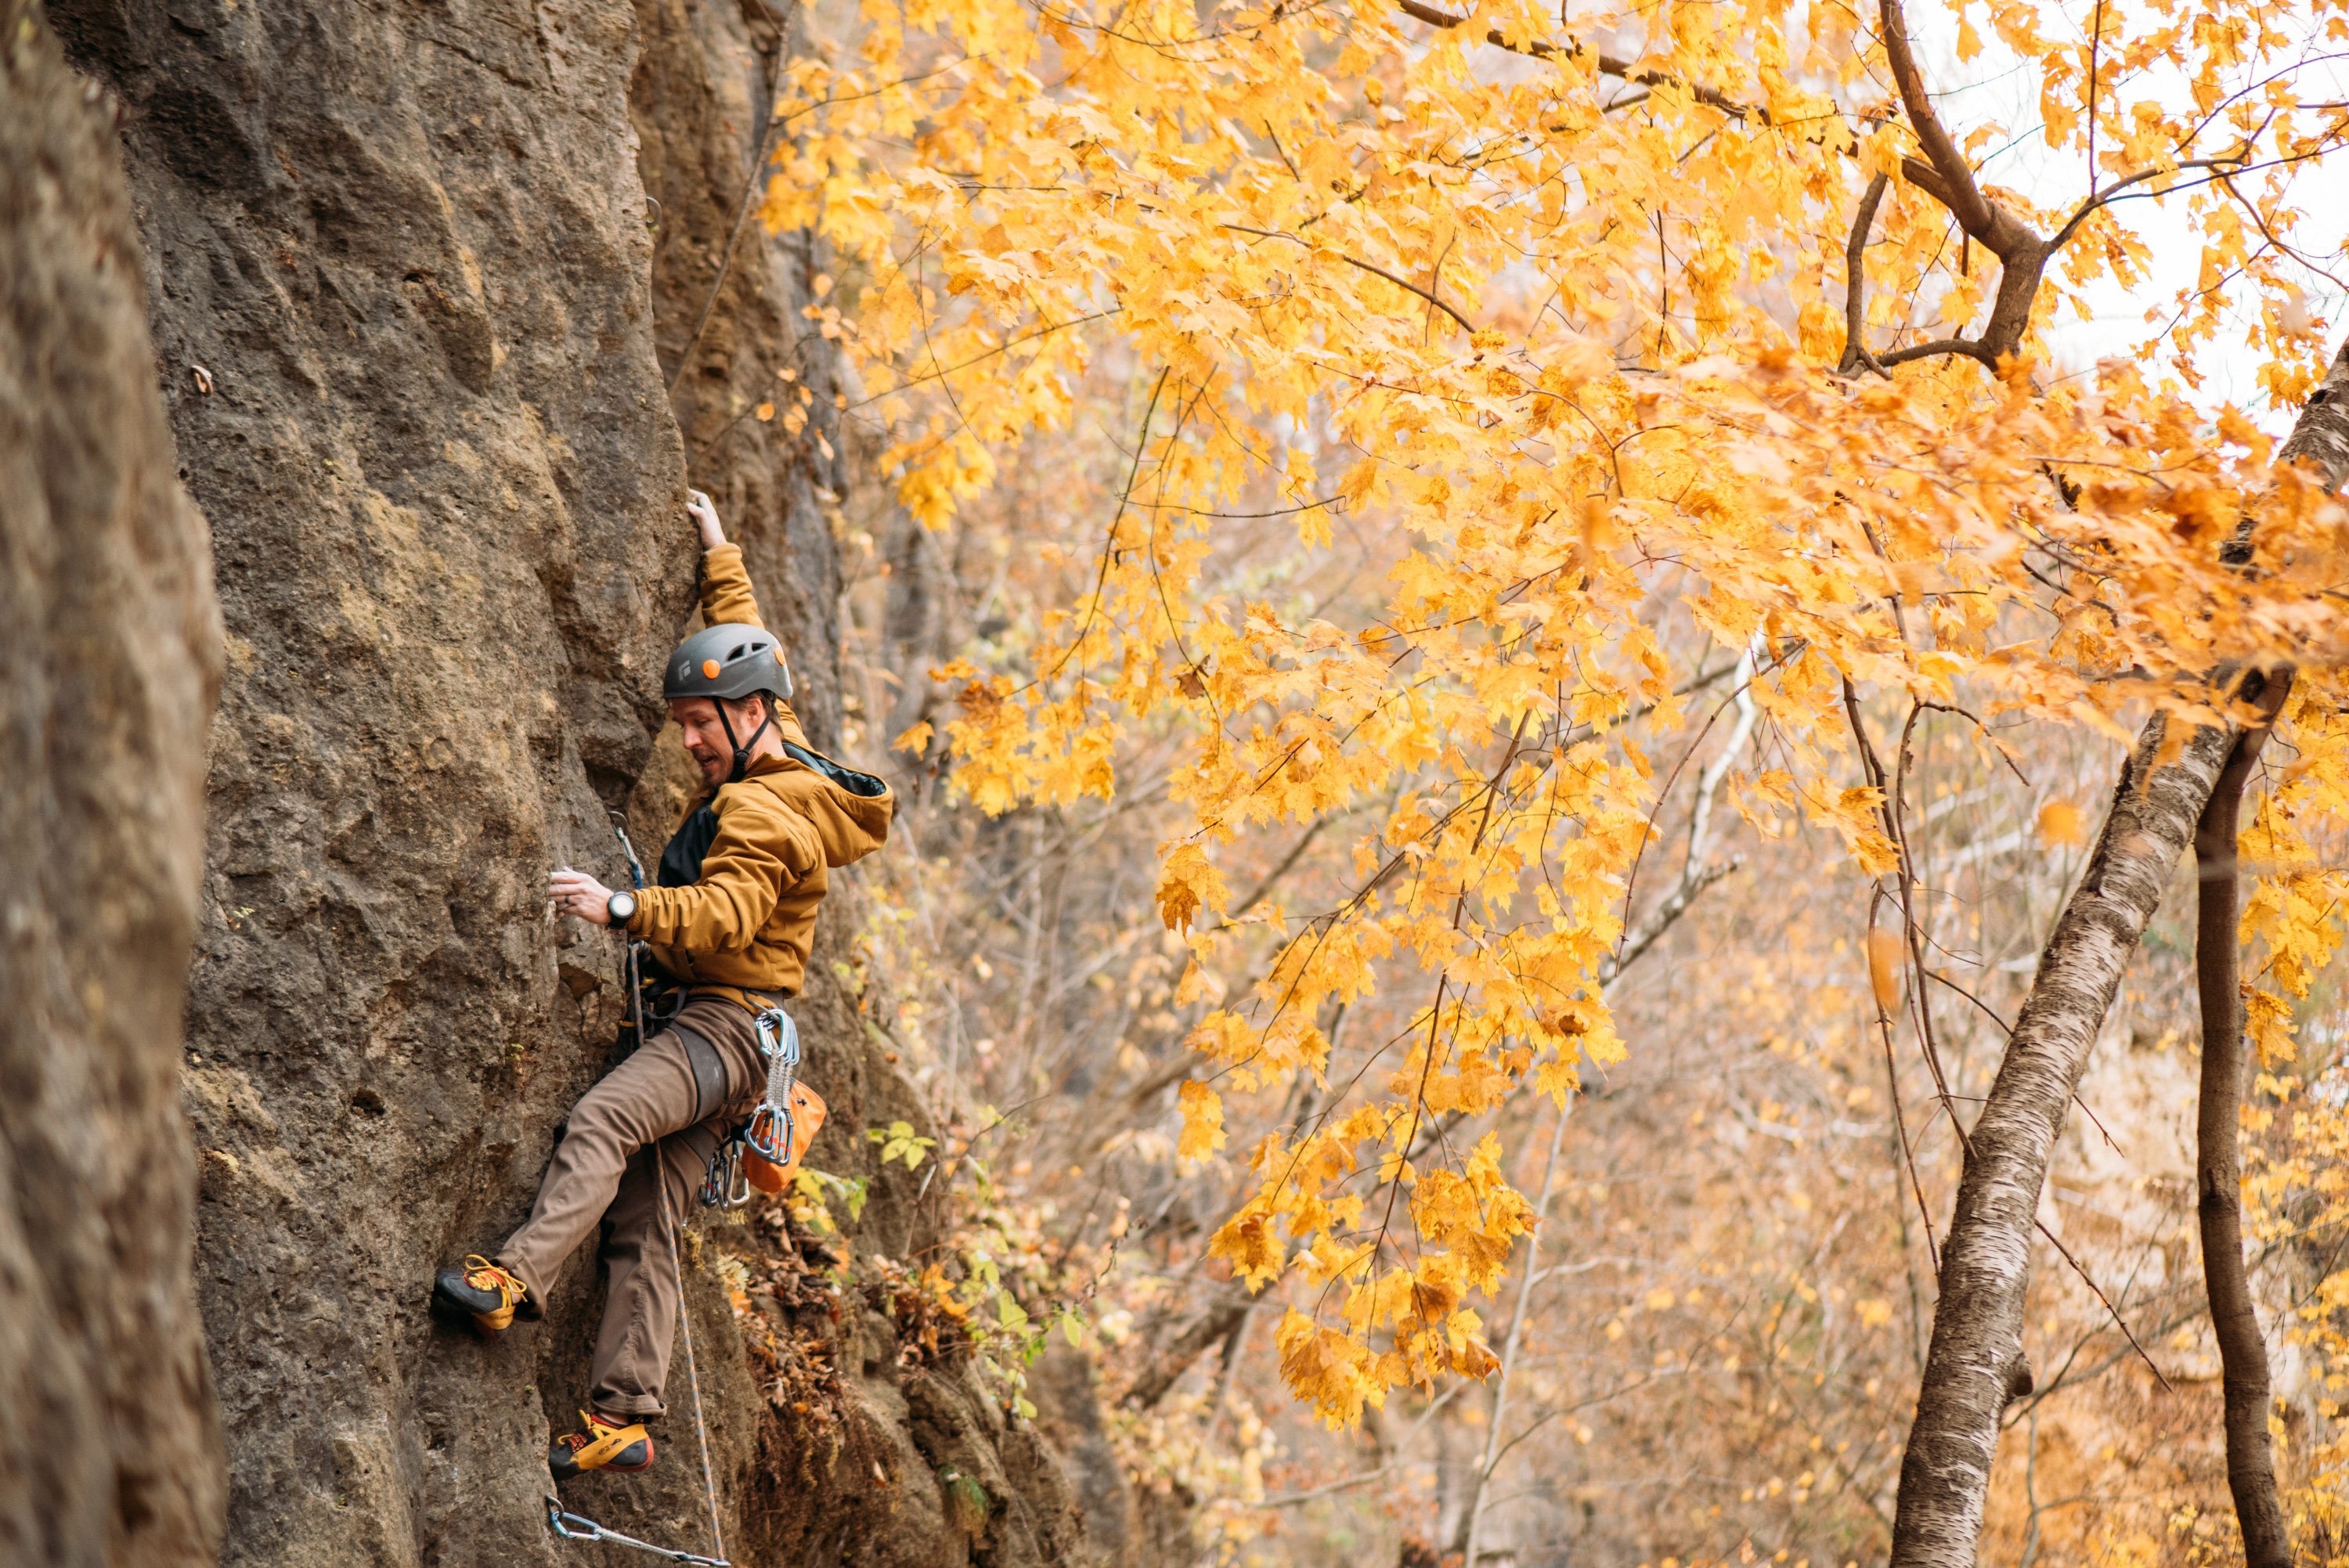 A man Lead Rock Climbing in the fall next to vibrant yellow-leaved Aspen